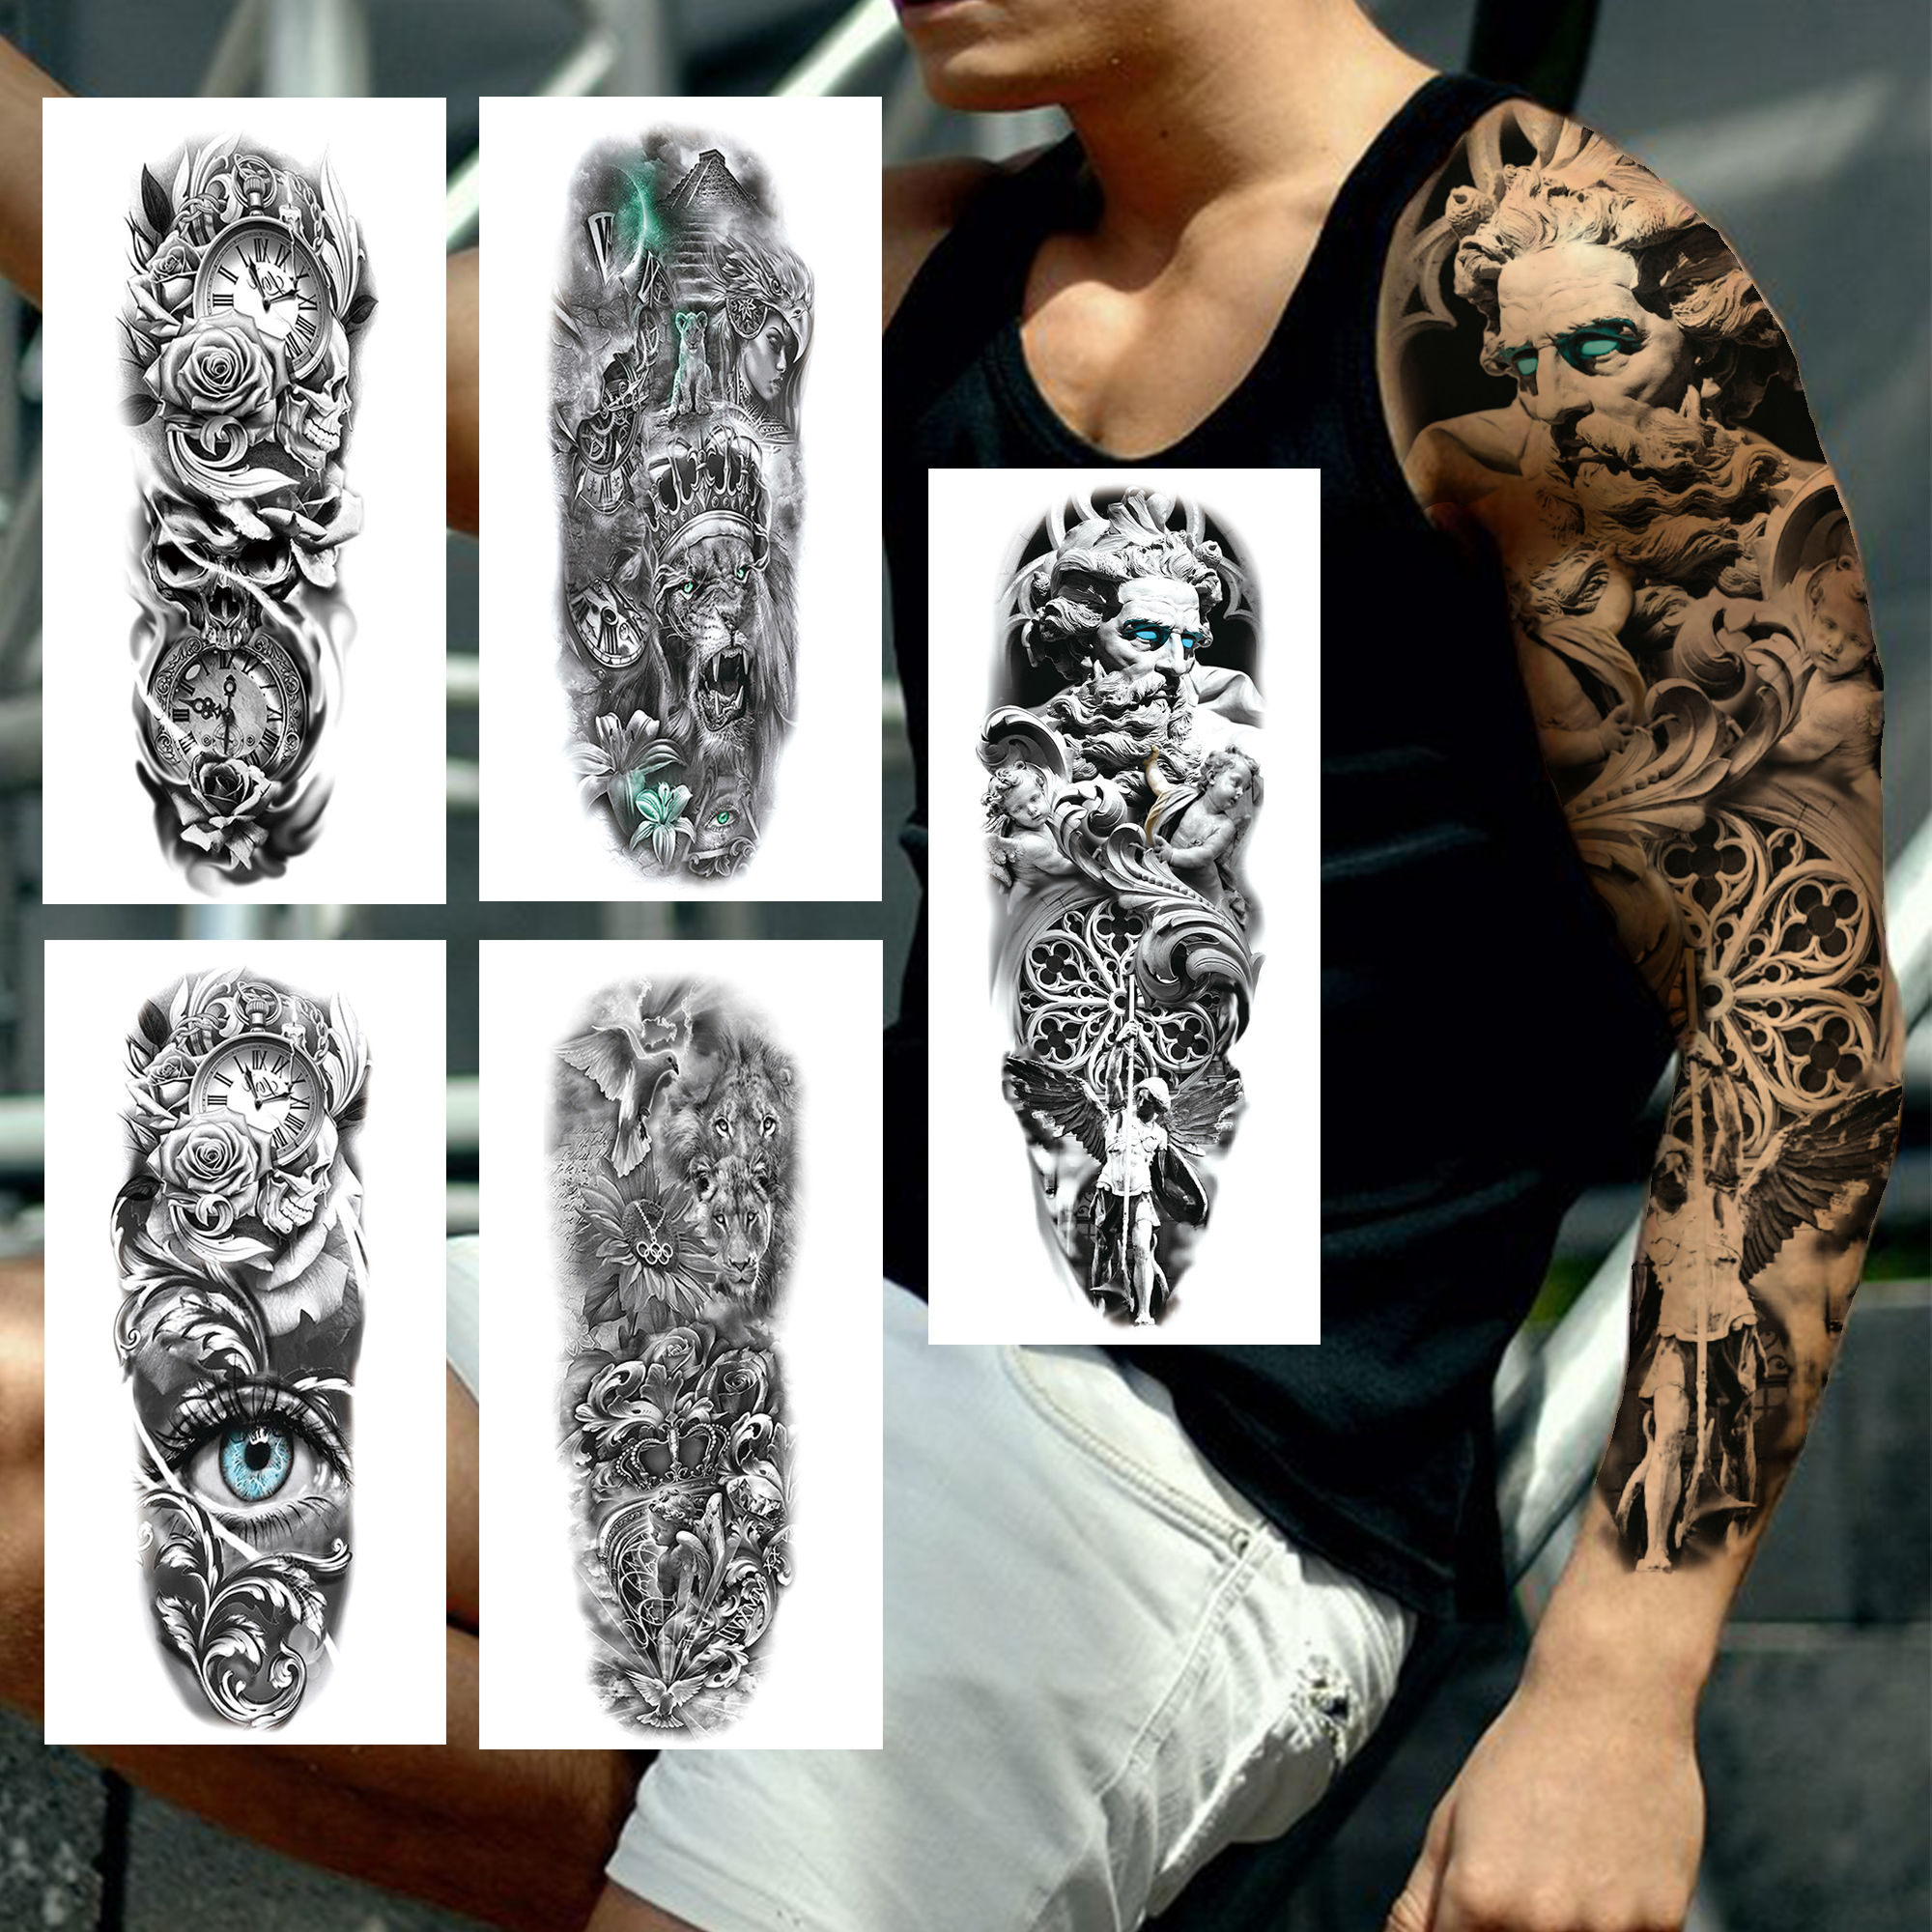 3D Christ Angel Temporary Tattoos Sleeve For Men Women Realistic Lion Compass Rose Eye Fake Tatoos Full Arm Large Tattoo Sticker